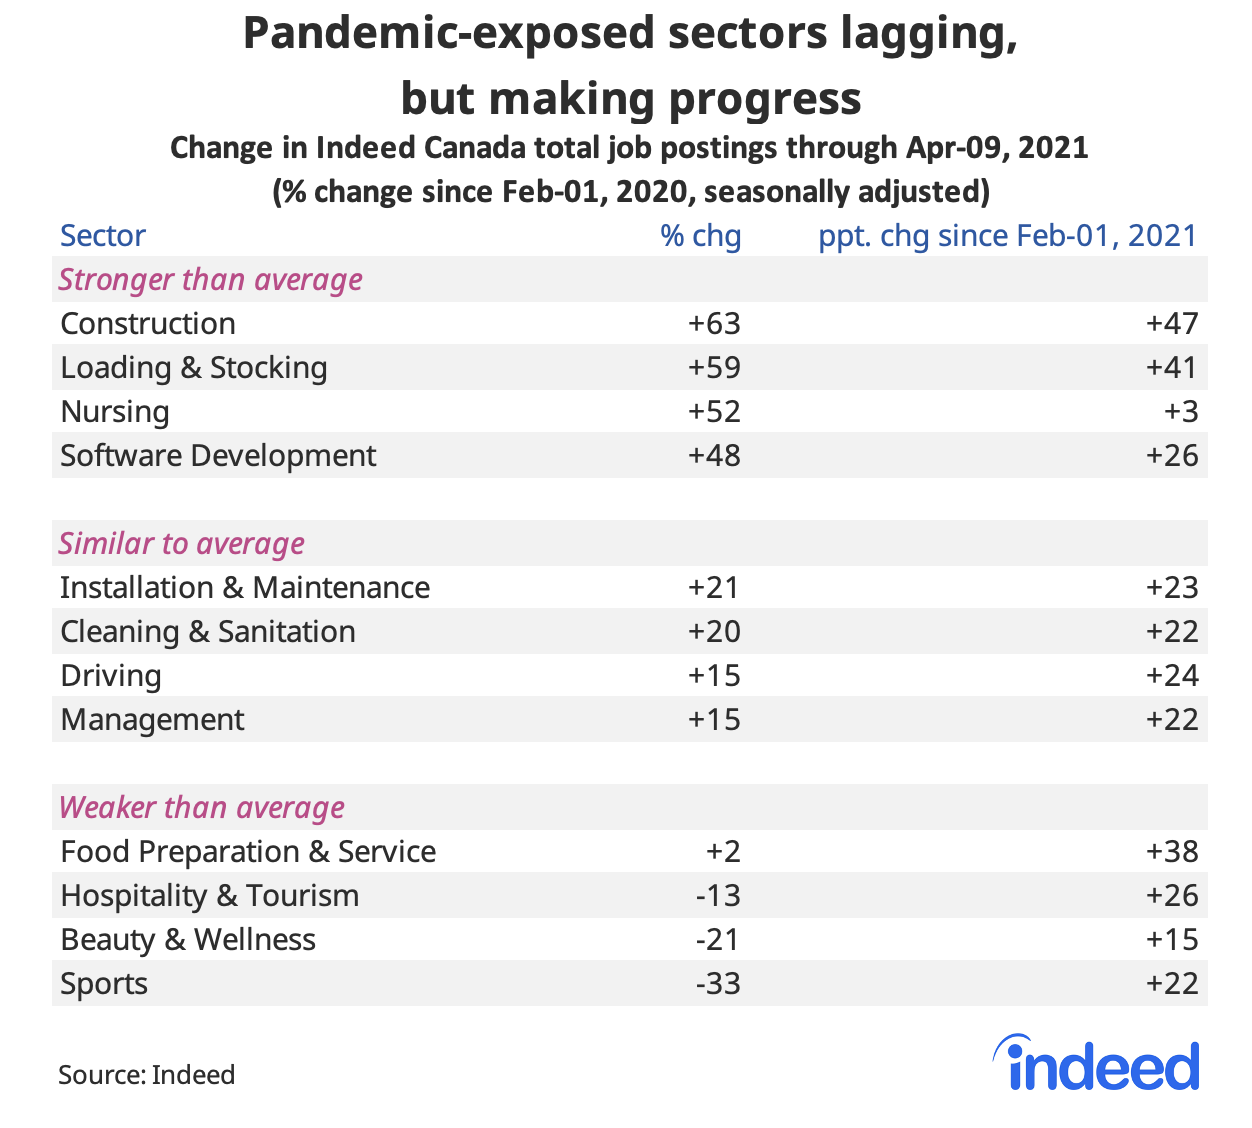 Table showing pandemic-exposed sectors lagging, but making progress